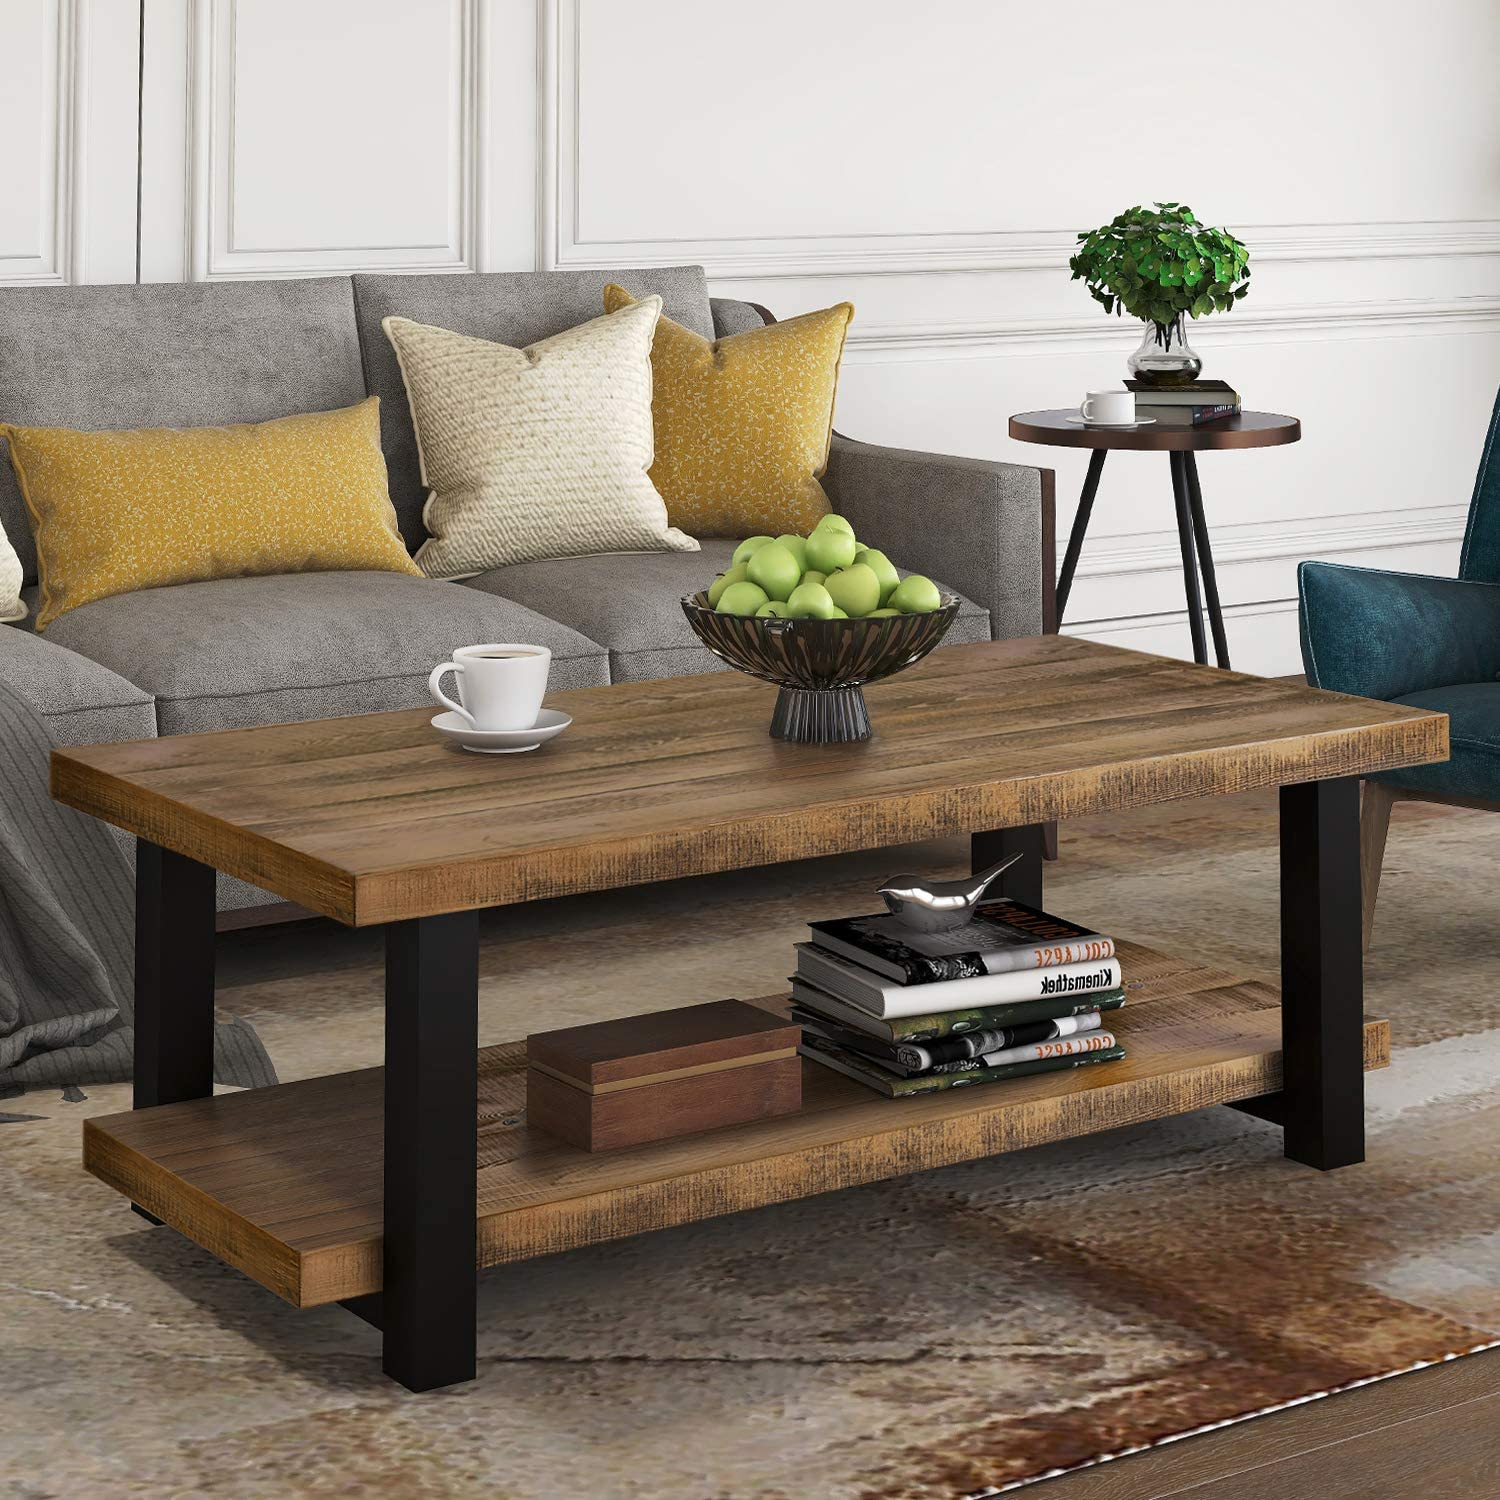 Knocbel Farmhouse Coffee Table for Max 72% OFF Living Room 2-Tier Sofa Arlington Mall Side